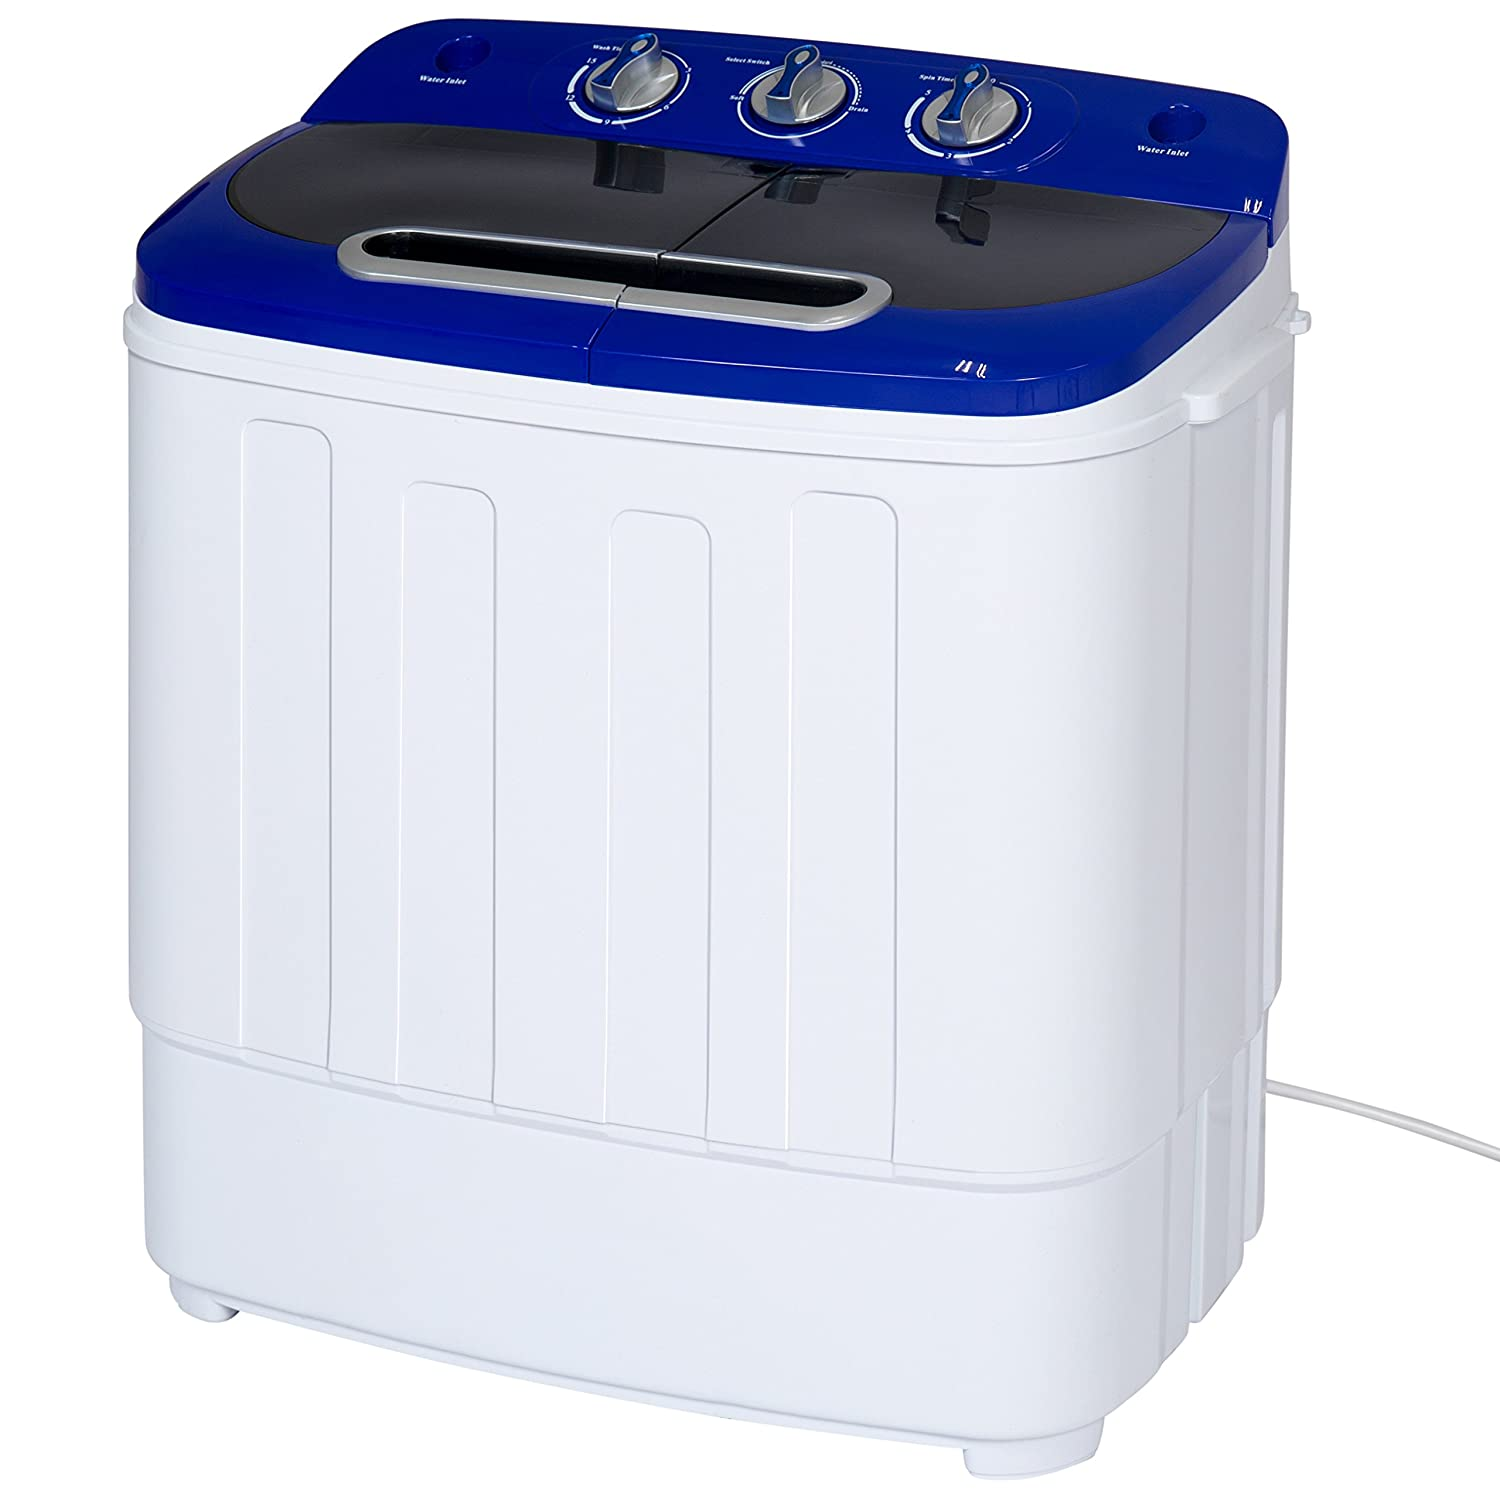 Amazon.com: Best Choice Products Portable Compact Mini Twin Tub Washing  Machine And Spin Cycle W/ Hose, 13lbs. Capacity: Appliances